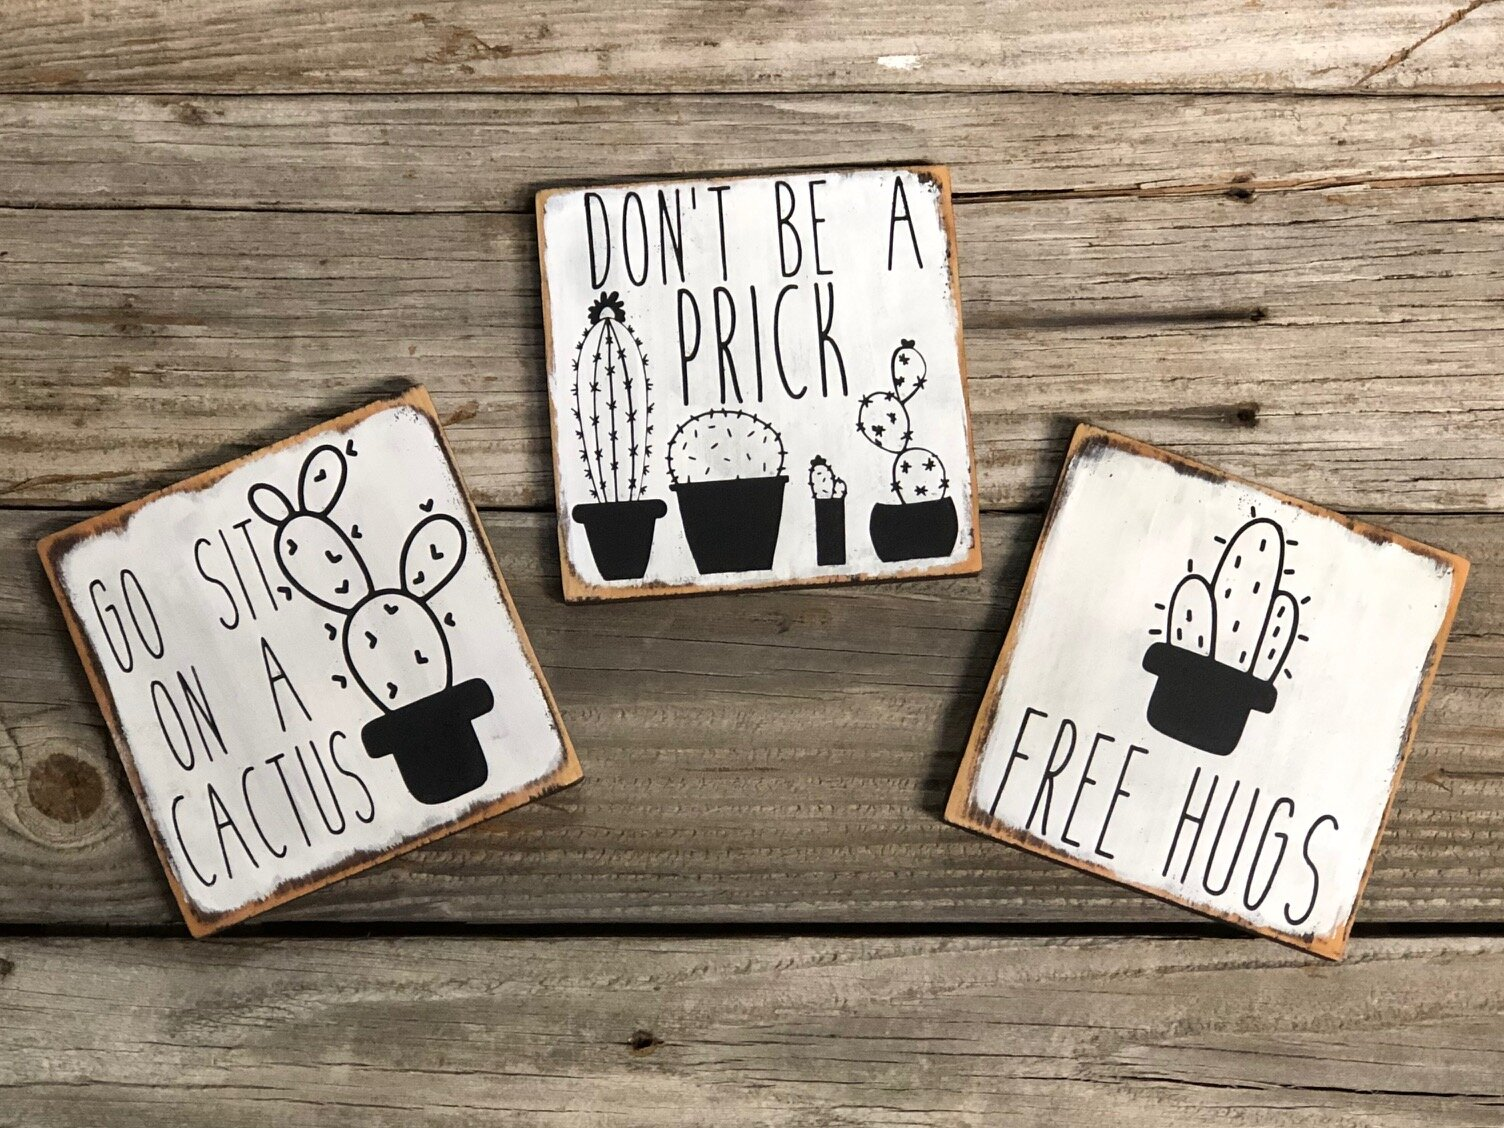 DIY painted wood funny cactus signs